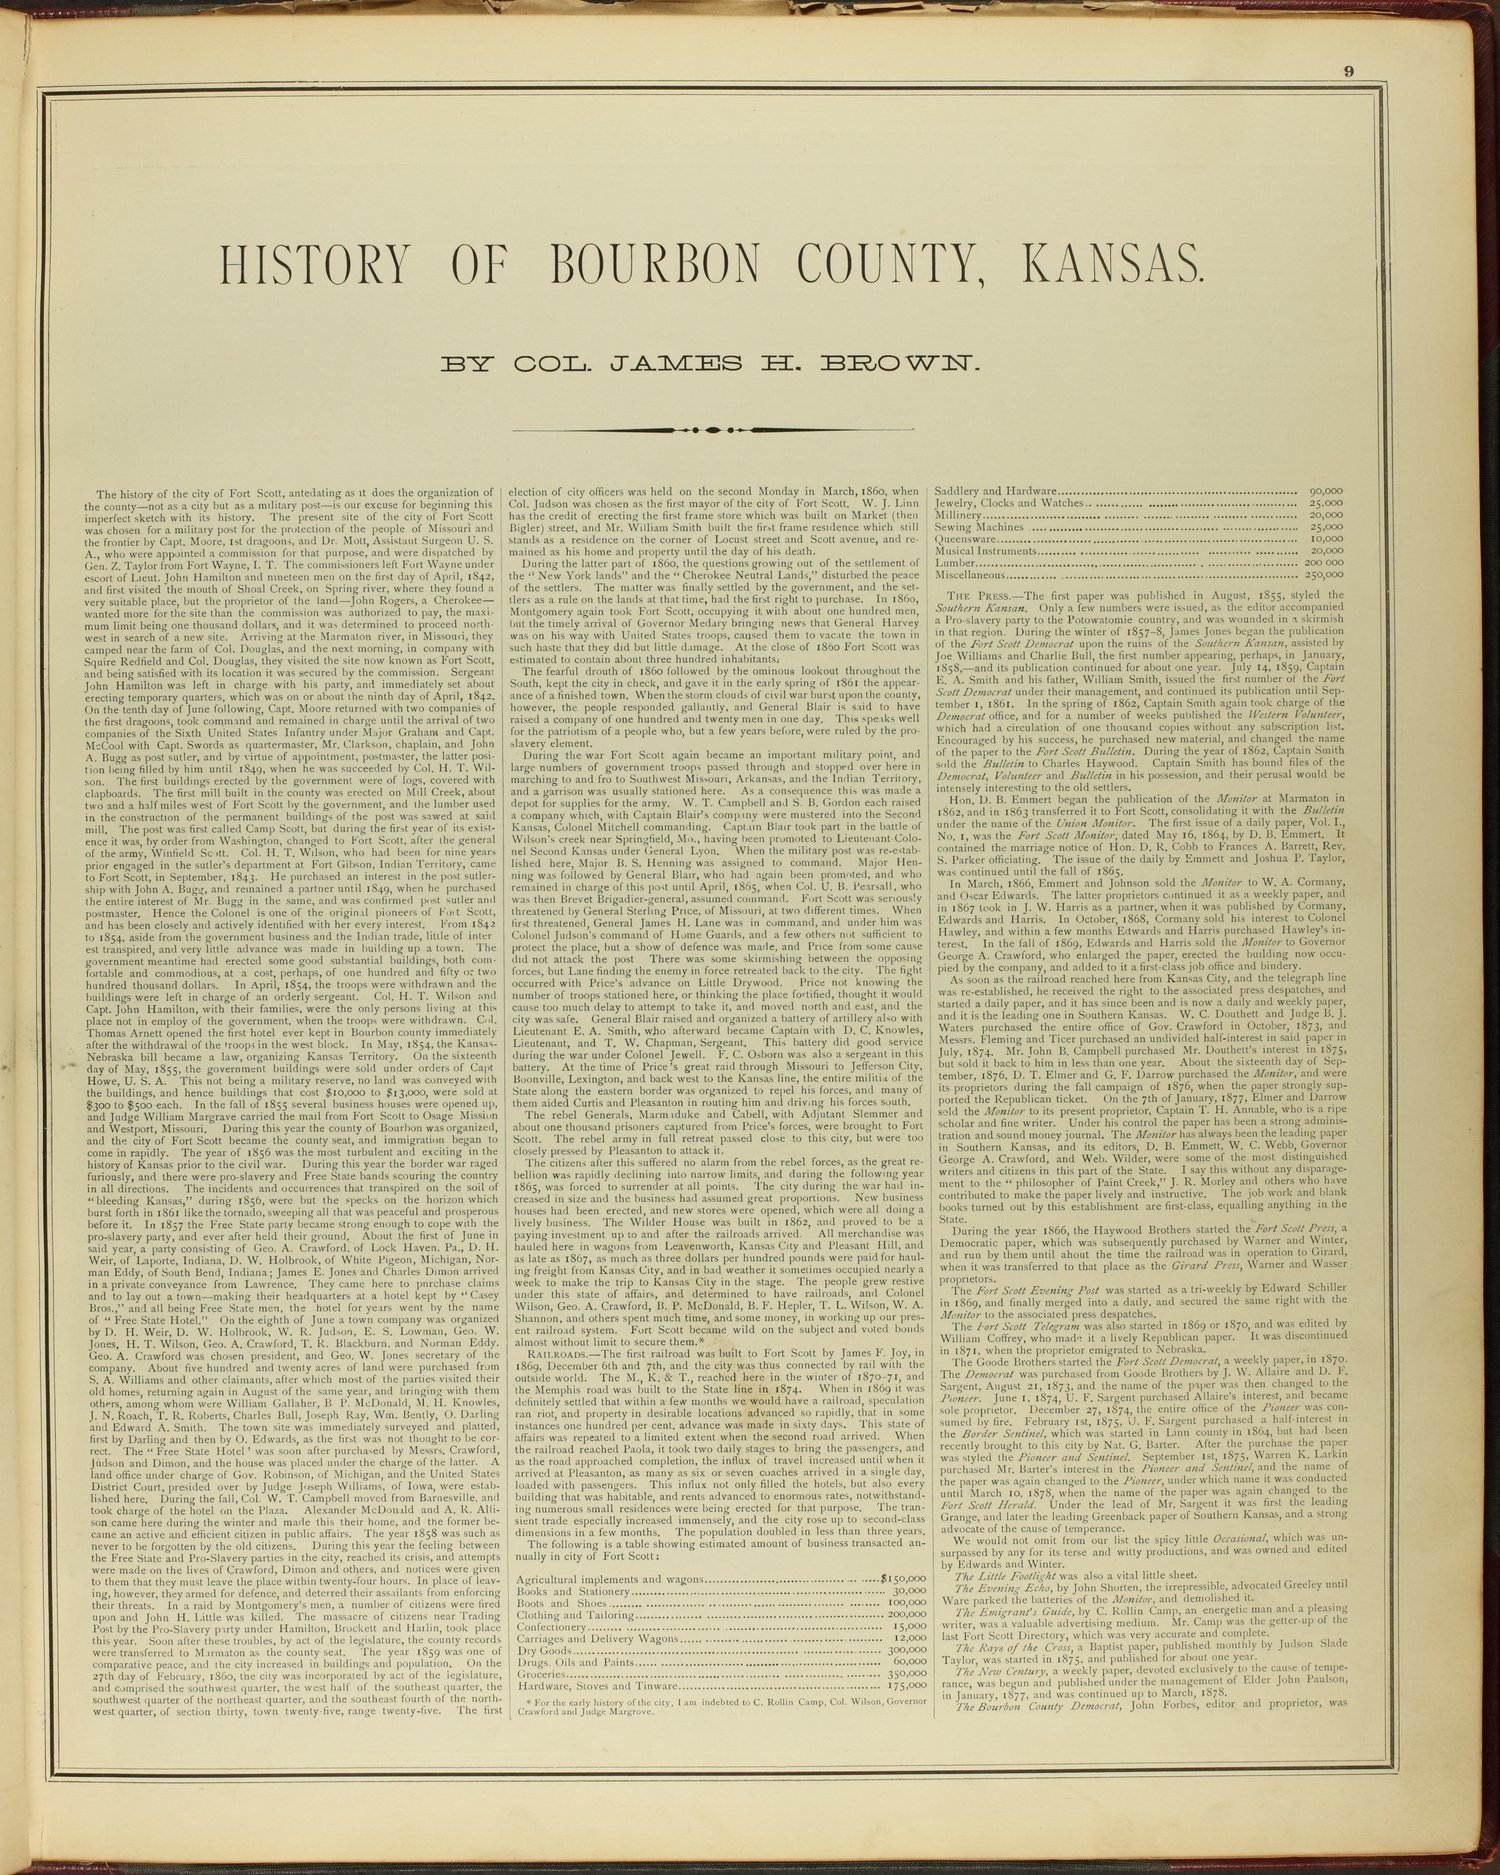 An illustrated historical atlas of Bourbon County, Kansas - 9